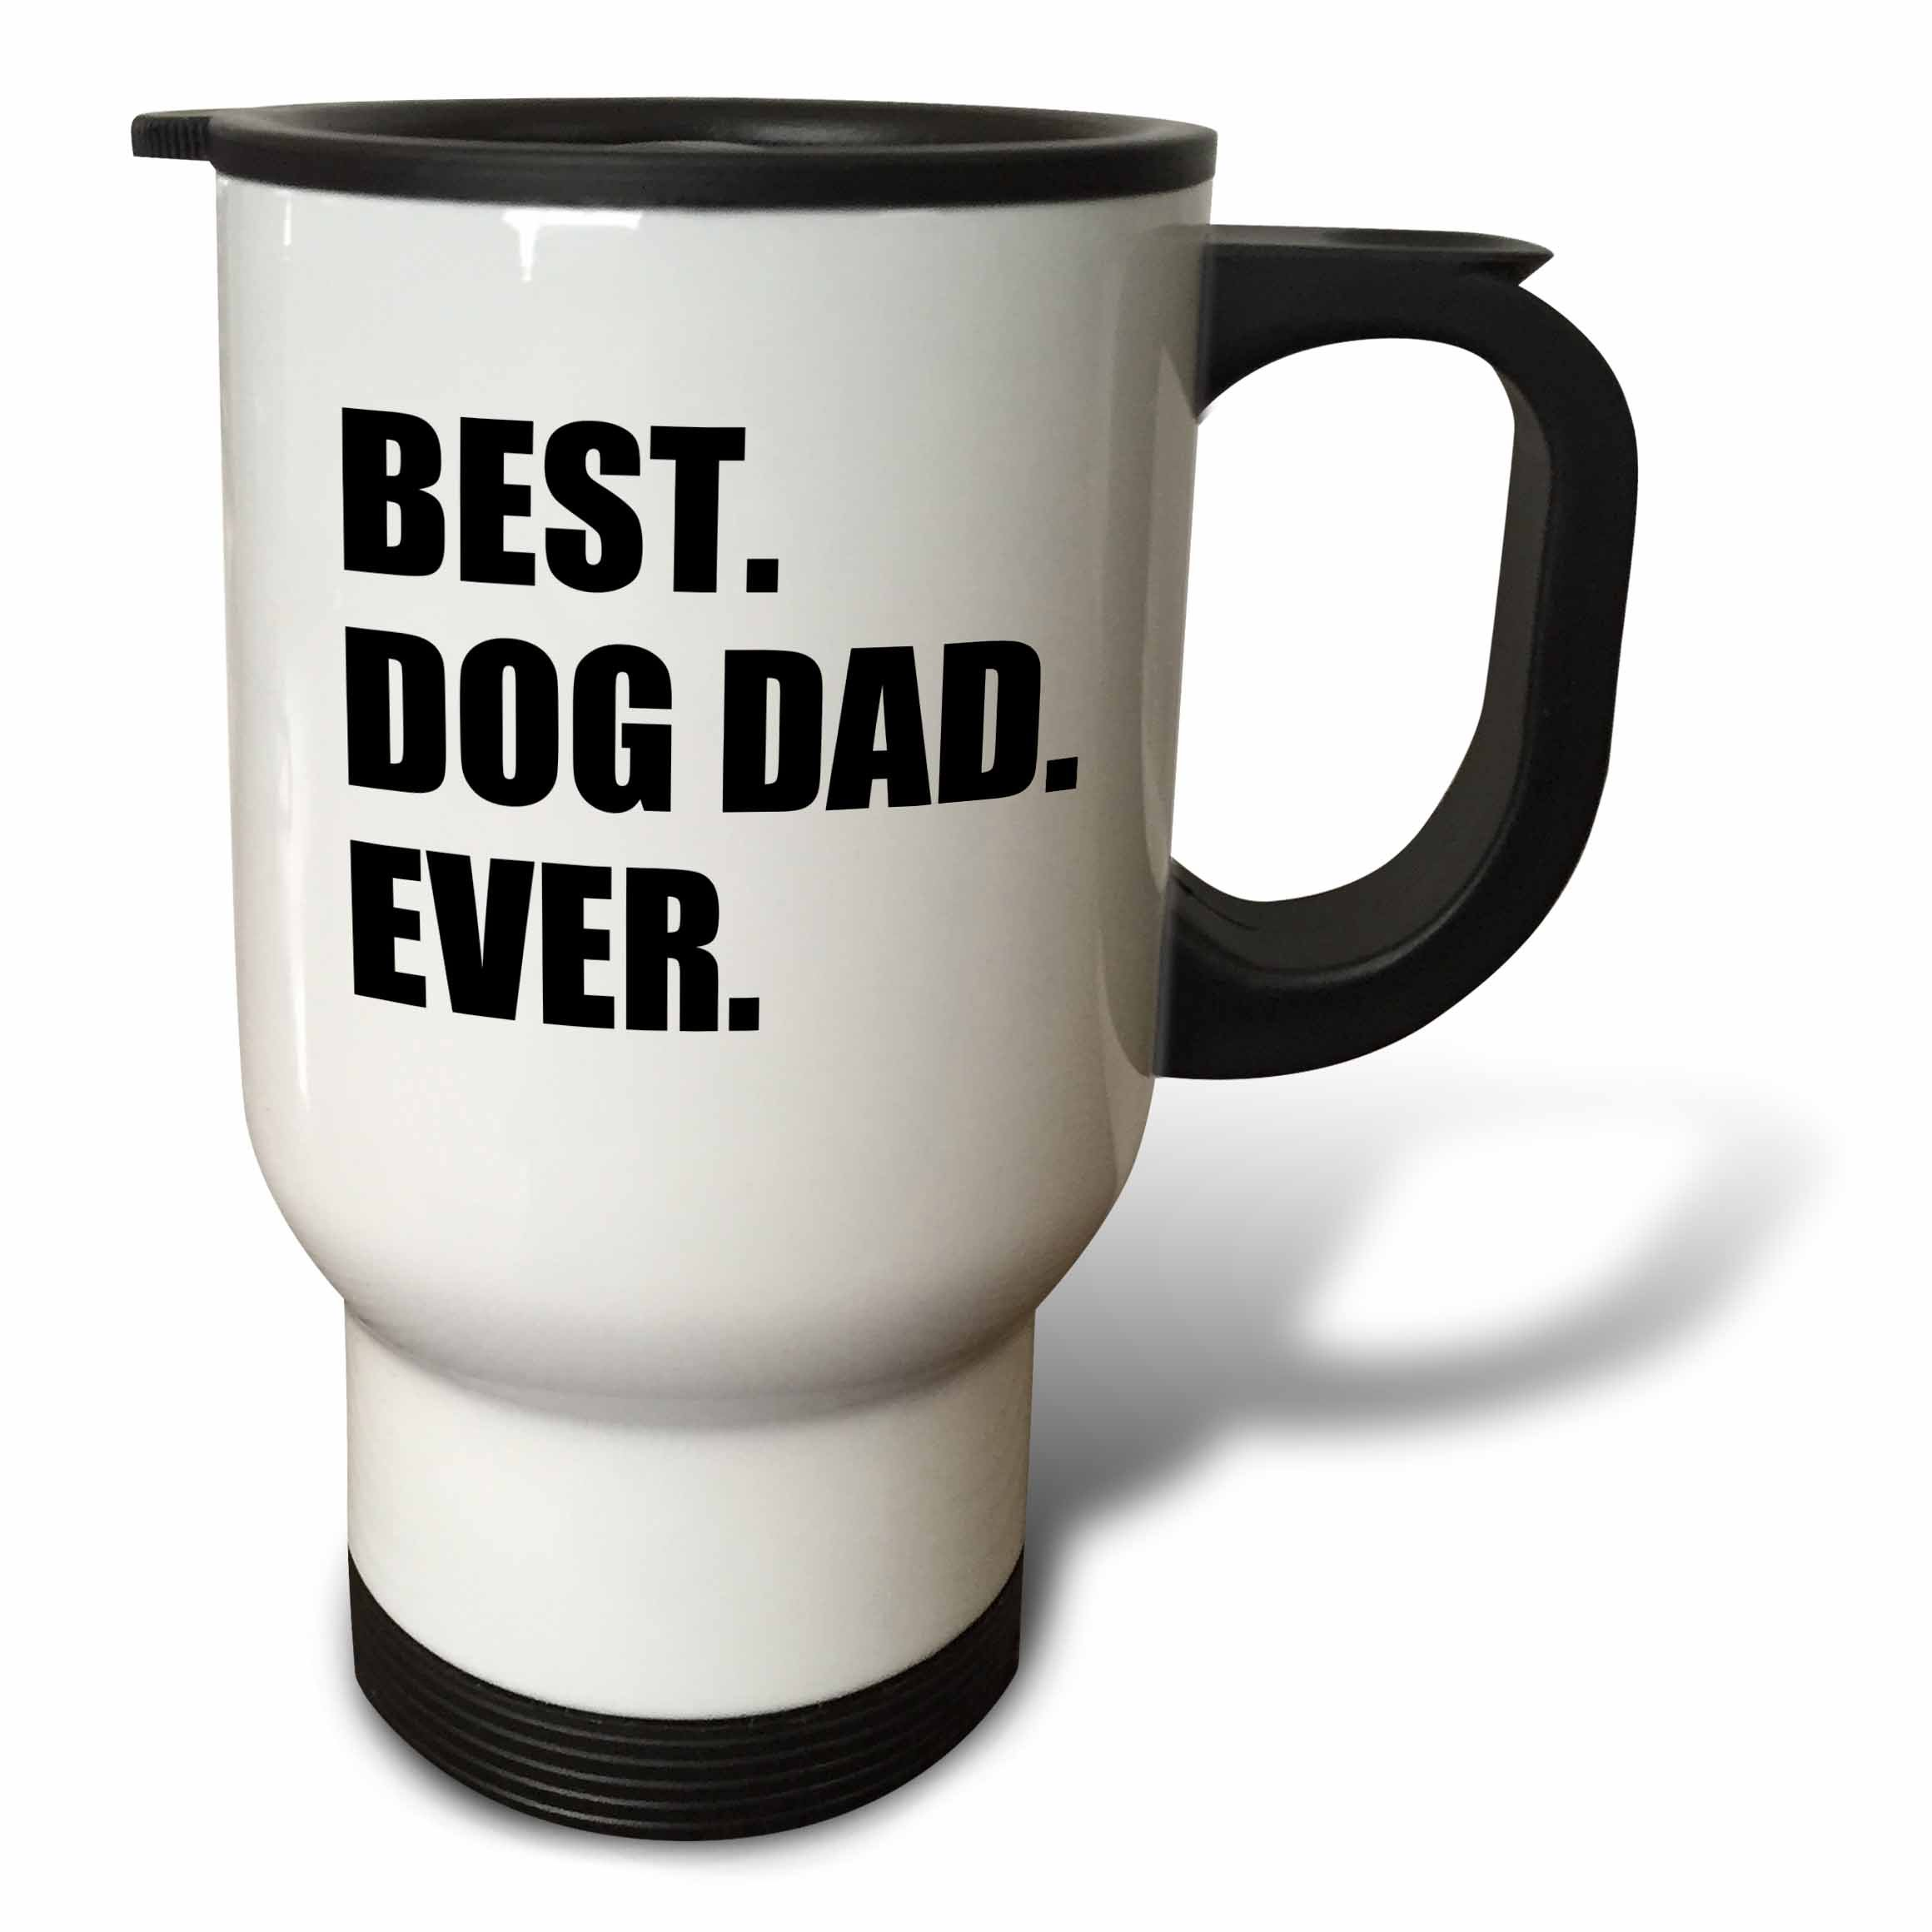 3dRose tm_184992_1 Best Dog Dad Ever Fun Pet Owner Gifts for Him Animal Lover Text Stainless Steel Travel Mug, 14-Ounce, White